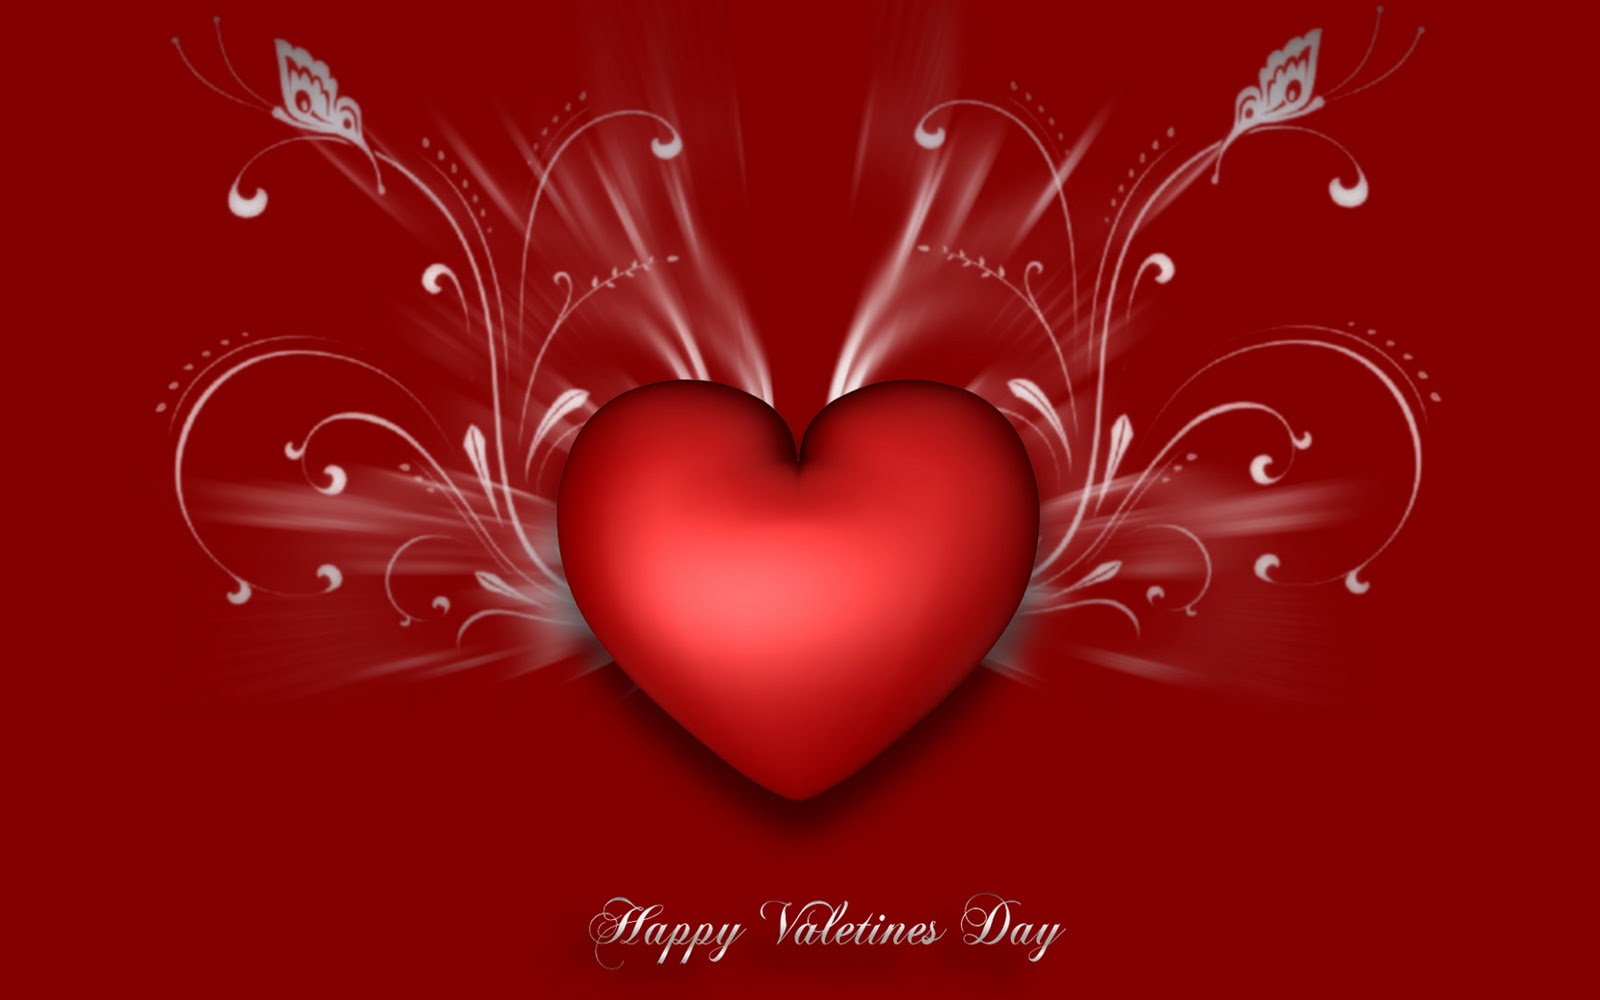 valentine wallpaper | valentines wallpaper | valentines day wallpaper